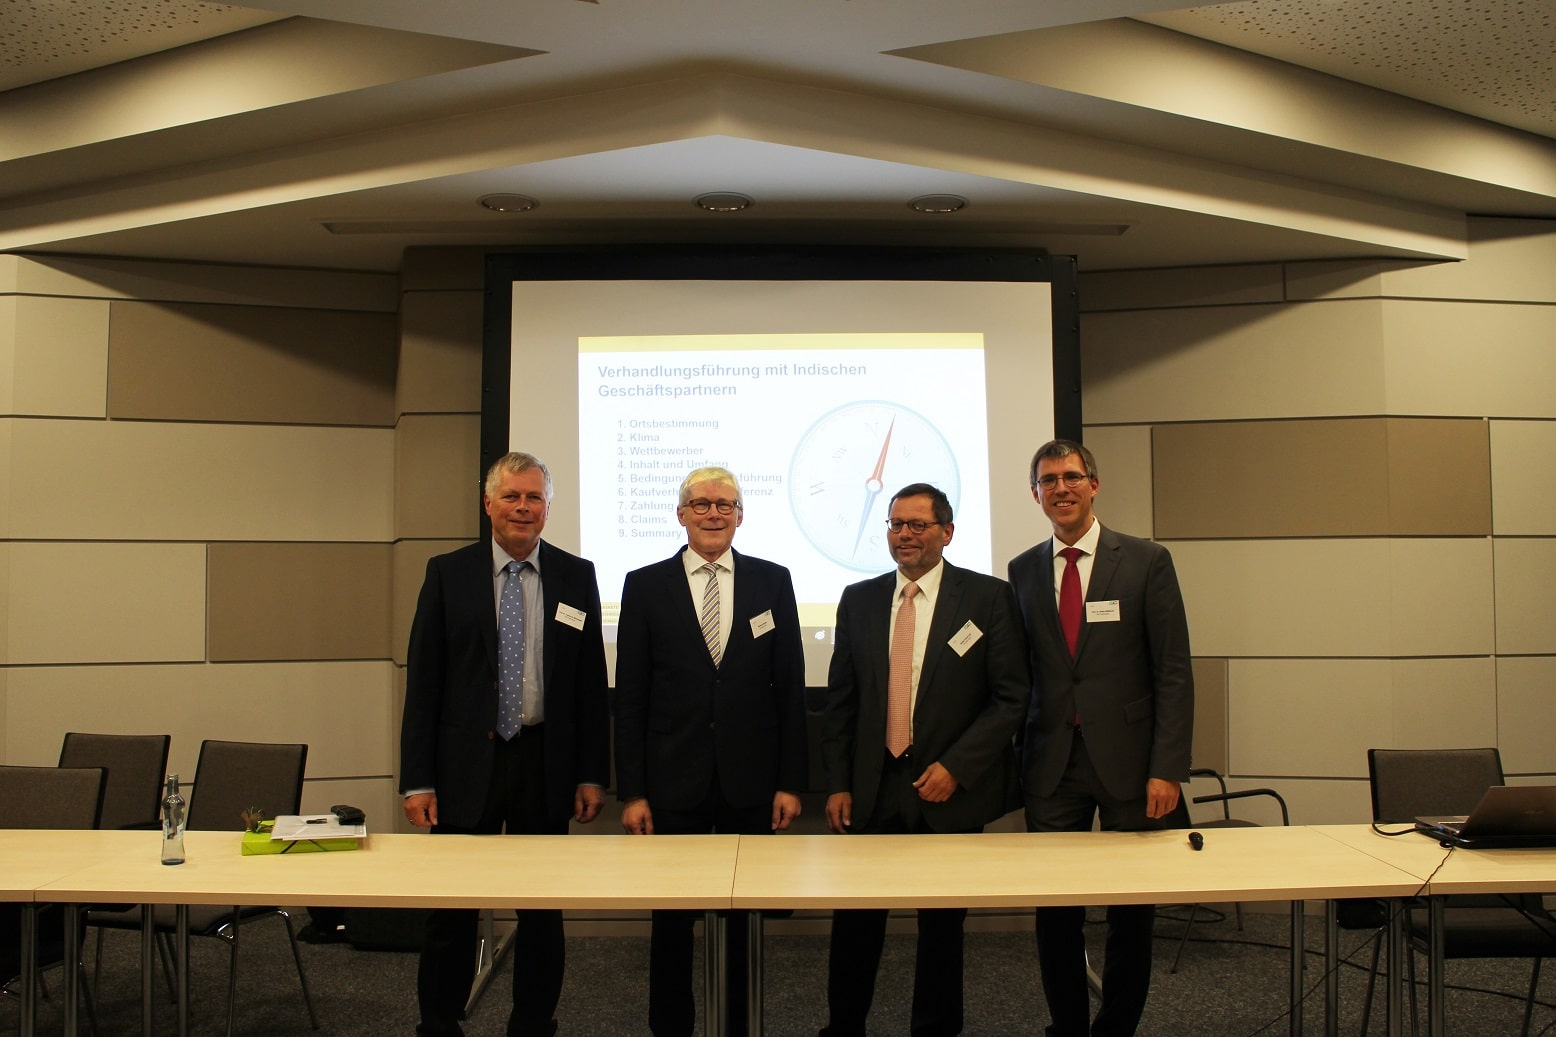 Prof. Dr. Stefan Wengler (re.) und Prof. Dr. Torsten Kühlmann (li.), die beiden Initiatoren des GIRT Oberfranken, Winfried Hilbig (2. v. li.), General Manager Asia Pacific Sales Gasket Division sowie Stefan Puchtler (2. v. re.), Director Sales Engineering Expansion Joint Division.